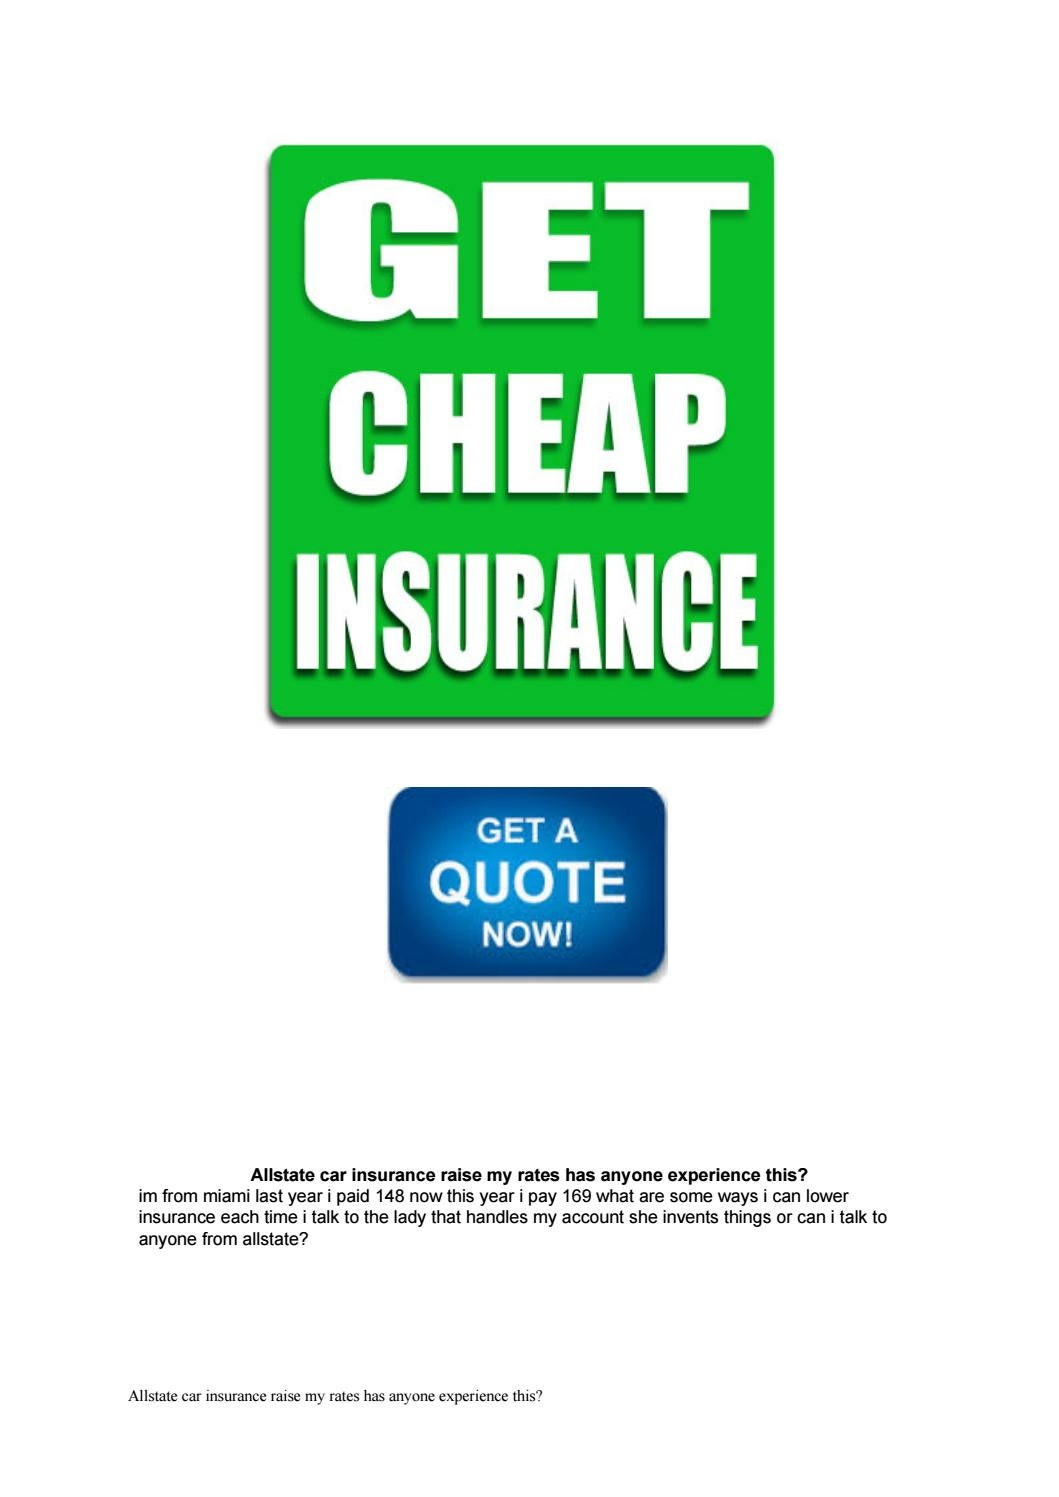 Allstate My Account >> Allstate Car Insurance Raise My Rates Has Anyone Experience